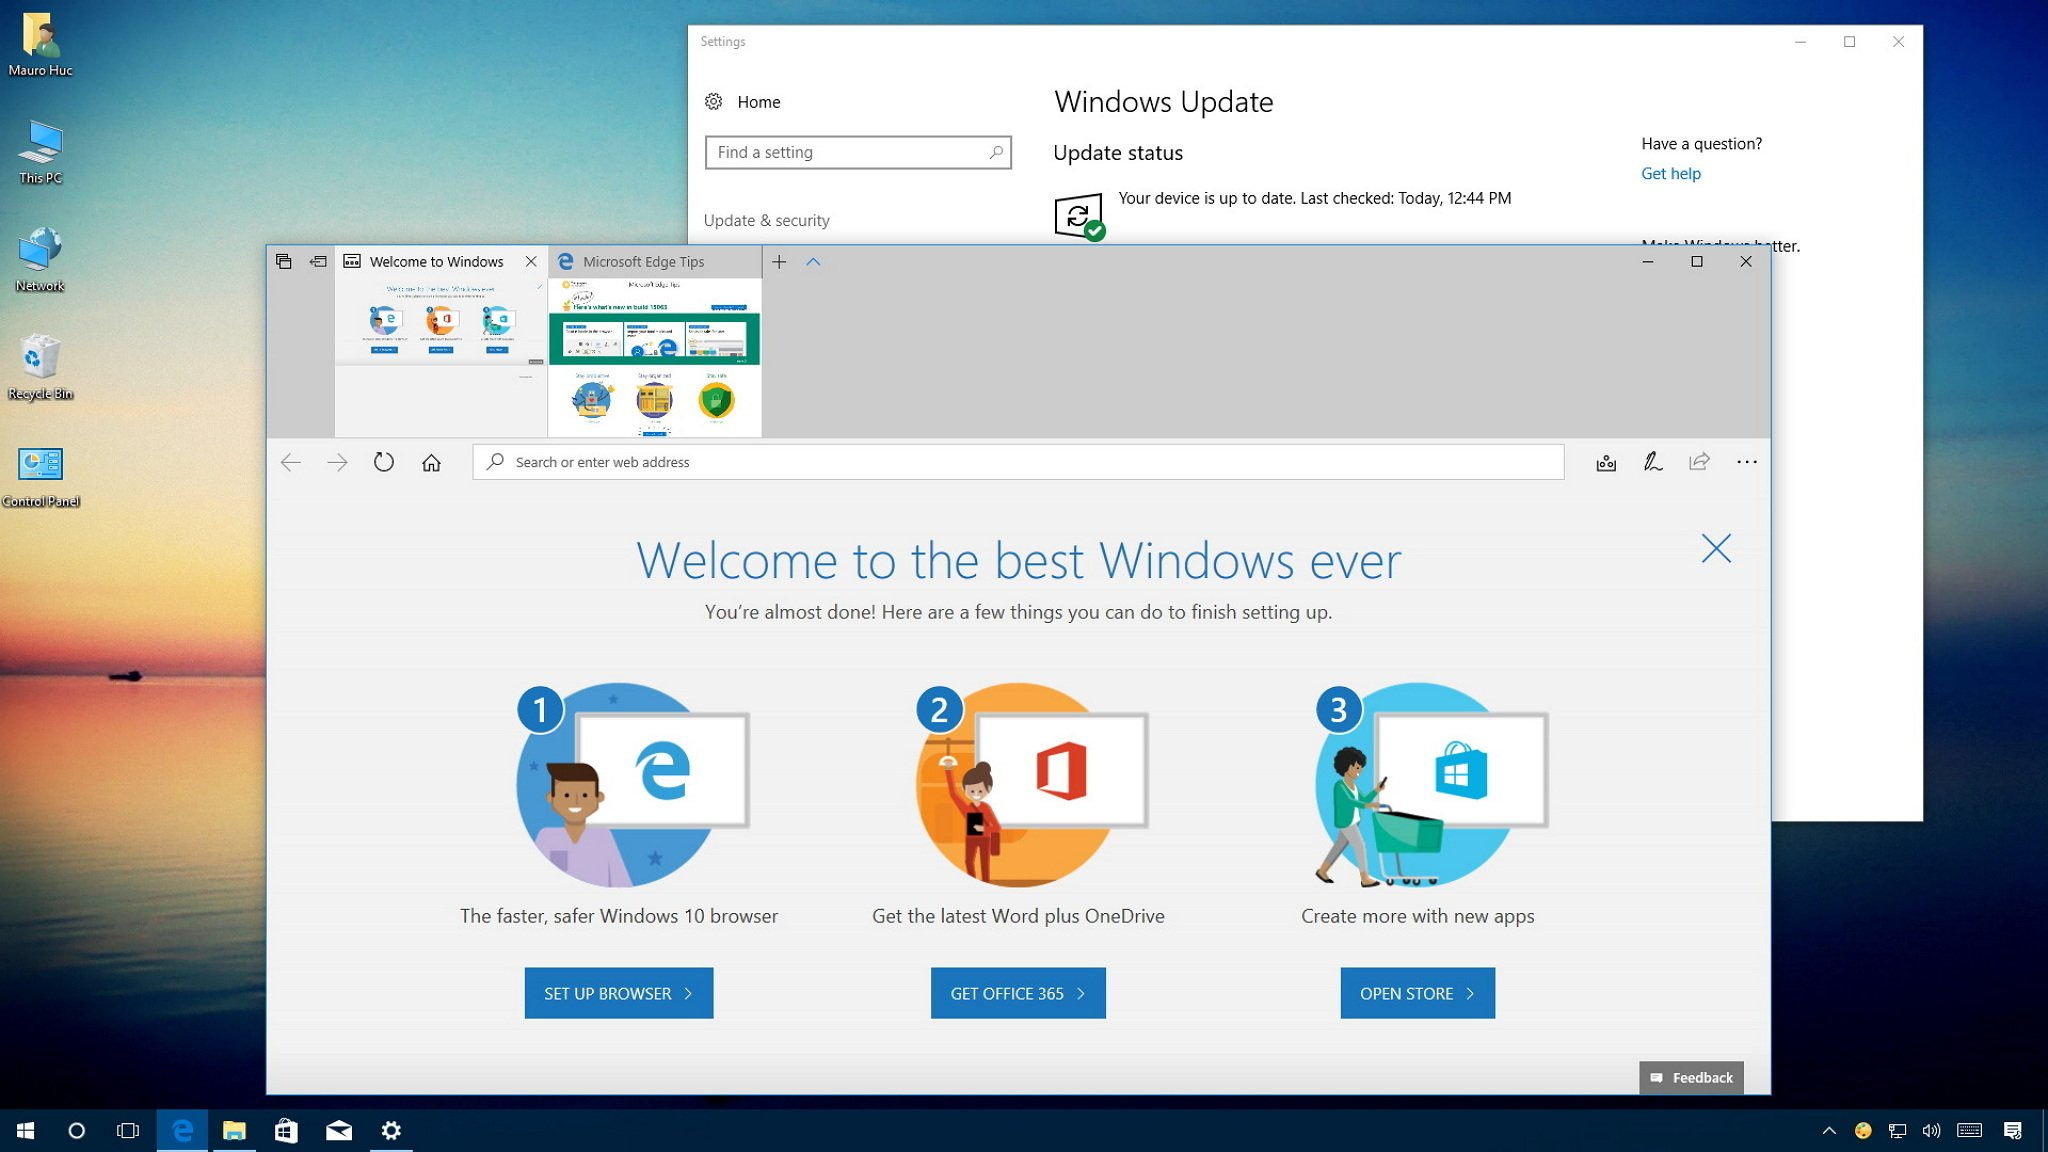 How to stop Windows 10 from showing the welcome screen after feature updates | Windows Central